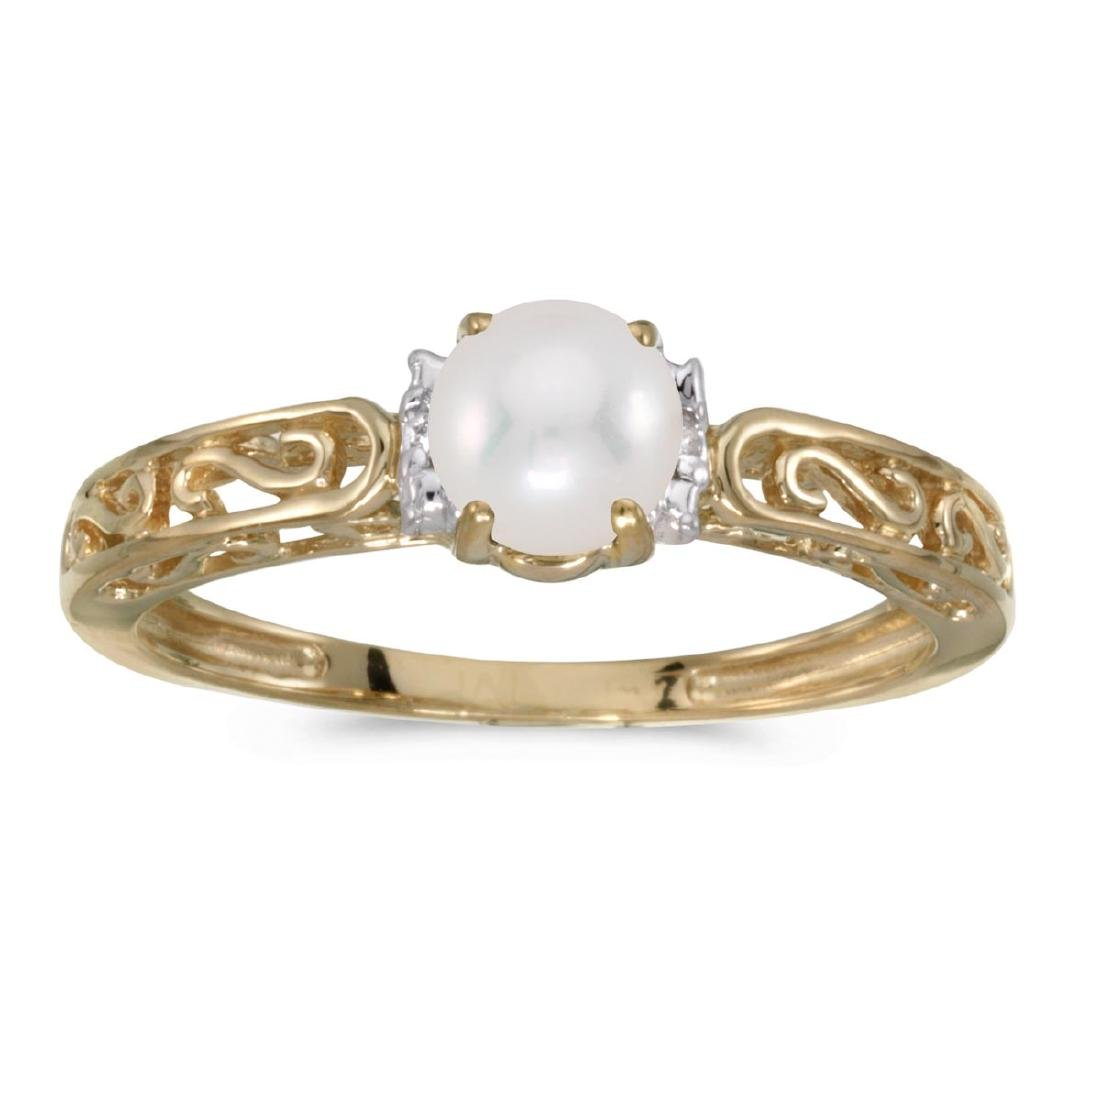 Certified 10k Yellow Gold Pearl And Diamond Ring 0.01 C